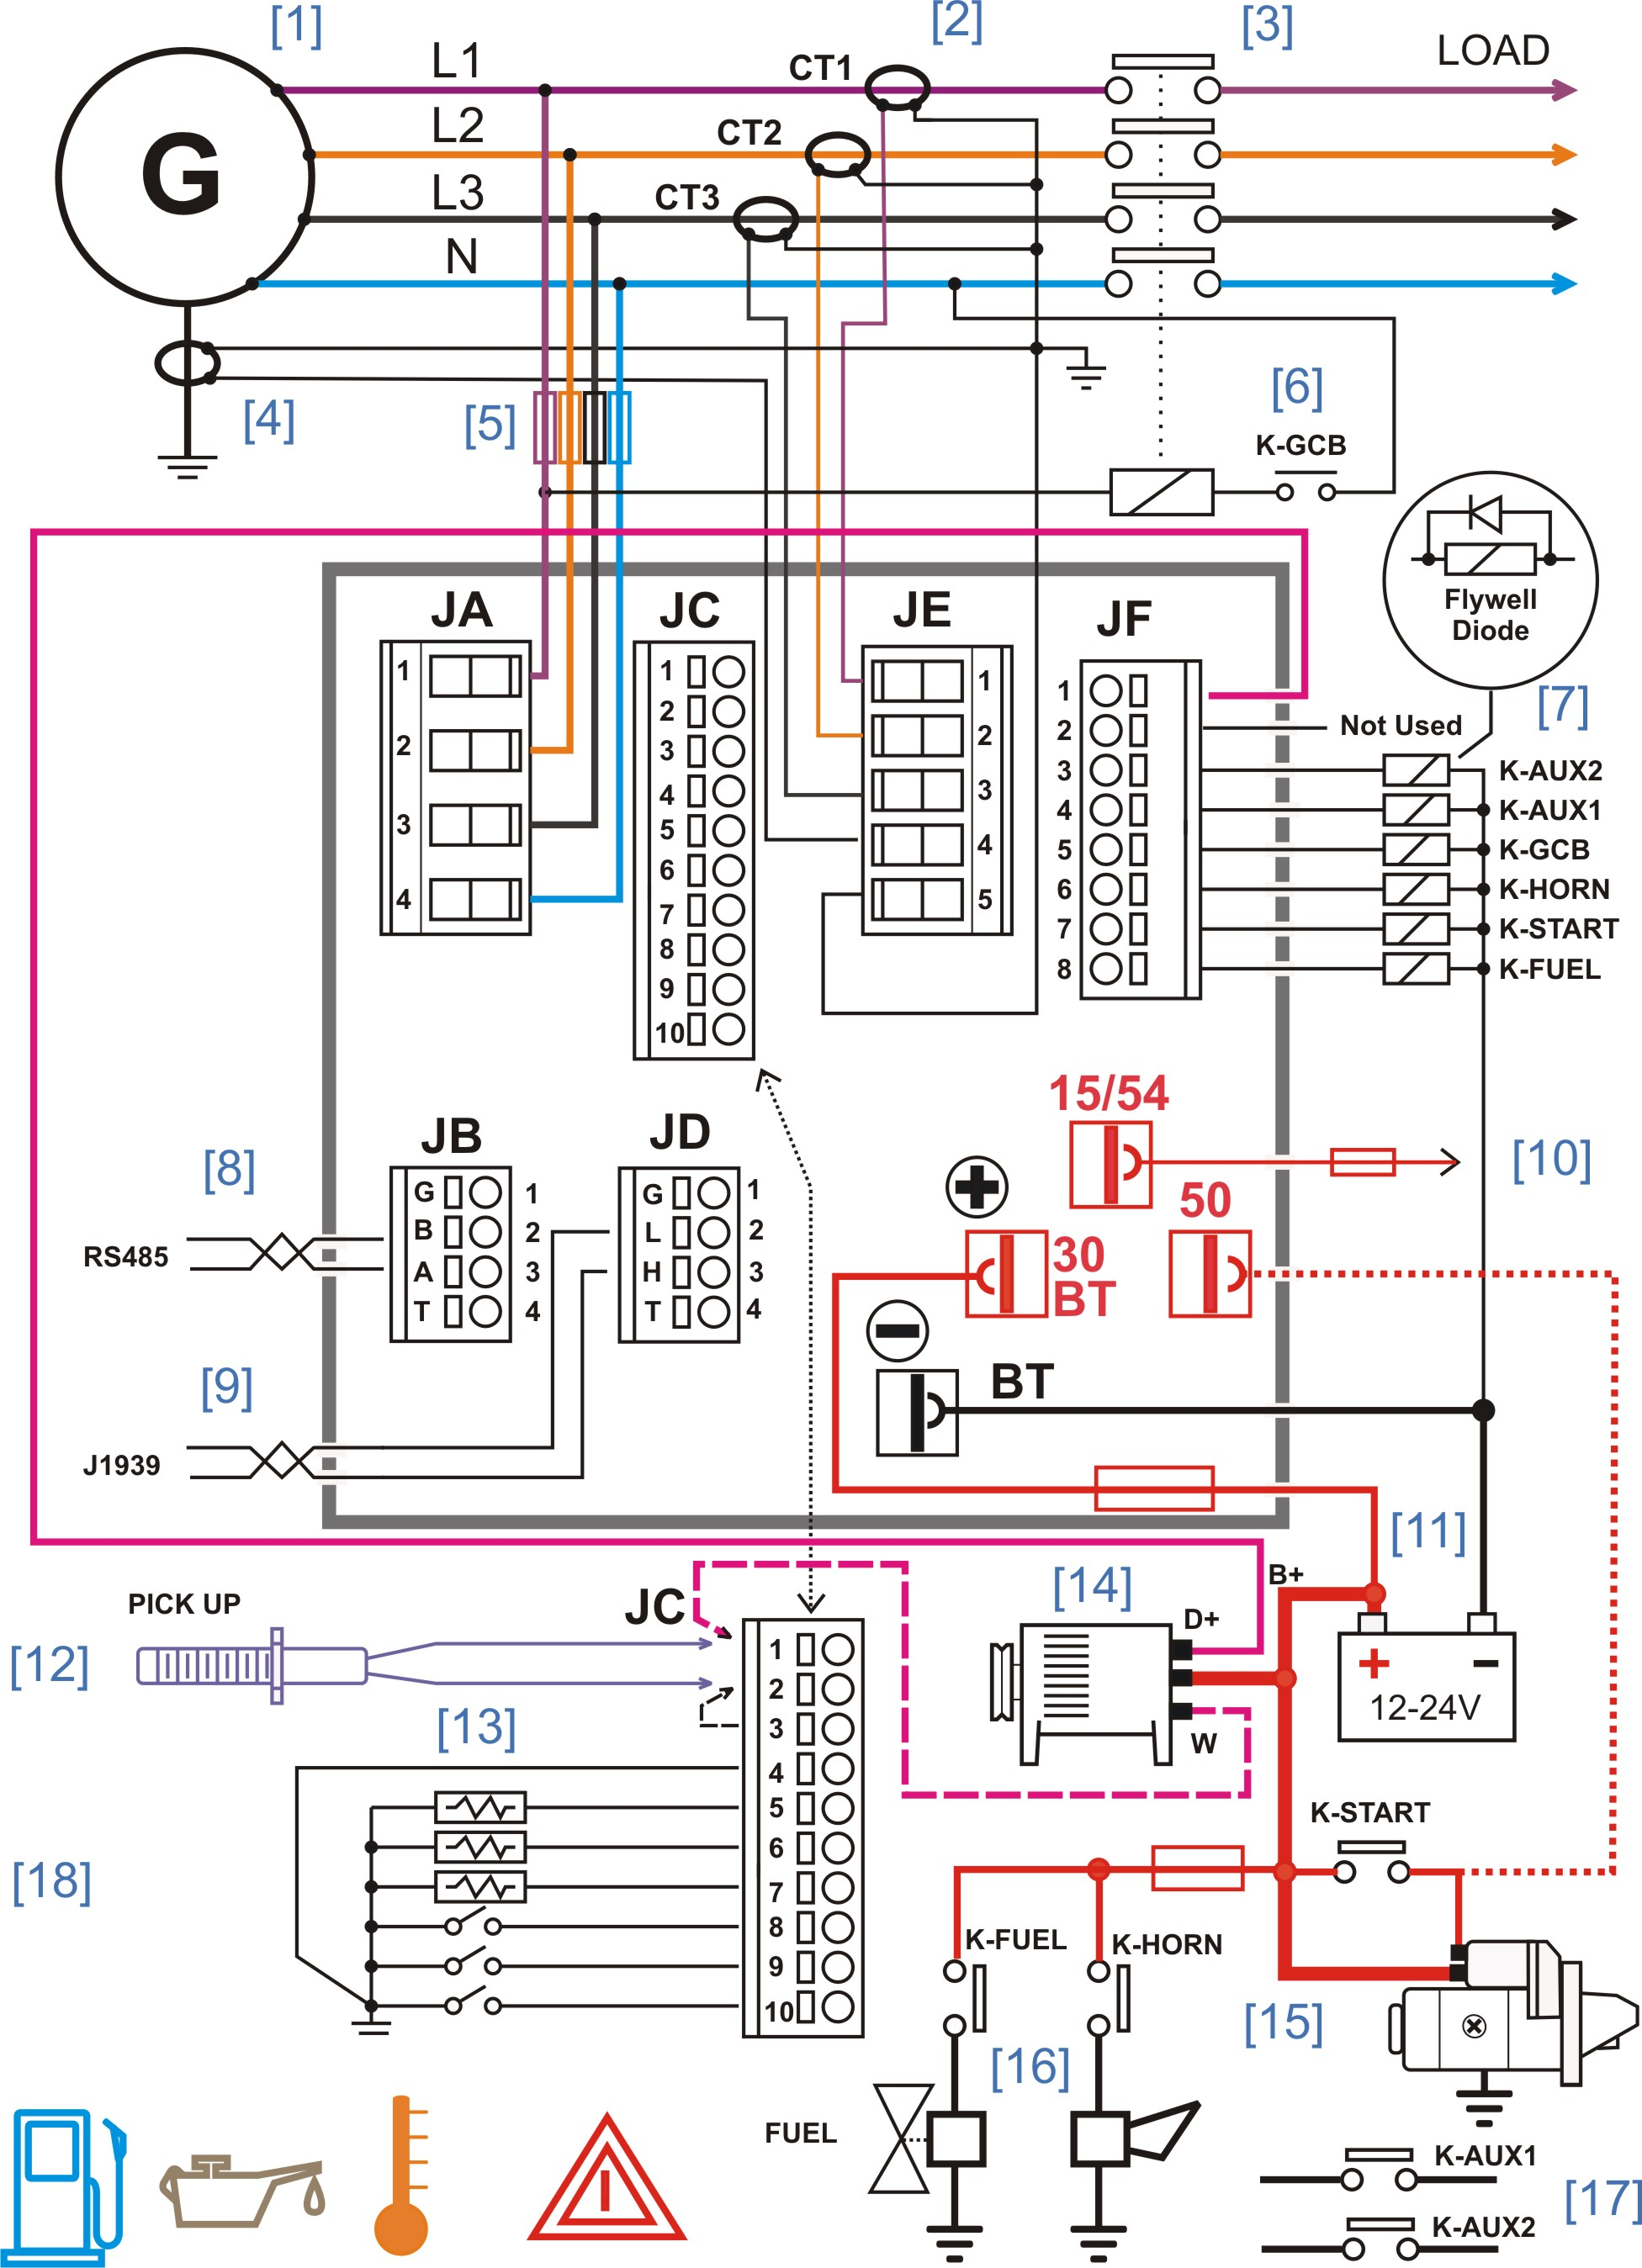 Control Wiring Diagram Detailed Schematics Vfd Schematic Generator Controller Genset Transformer